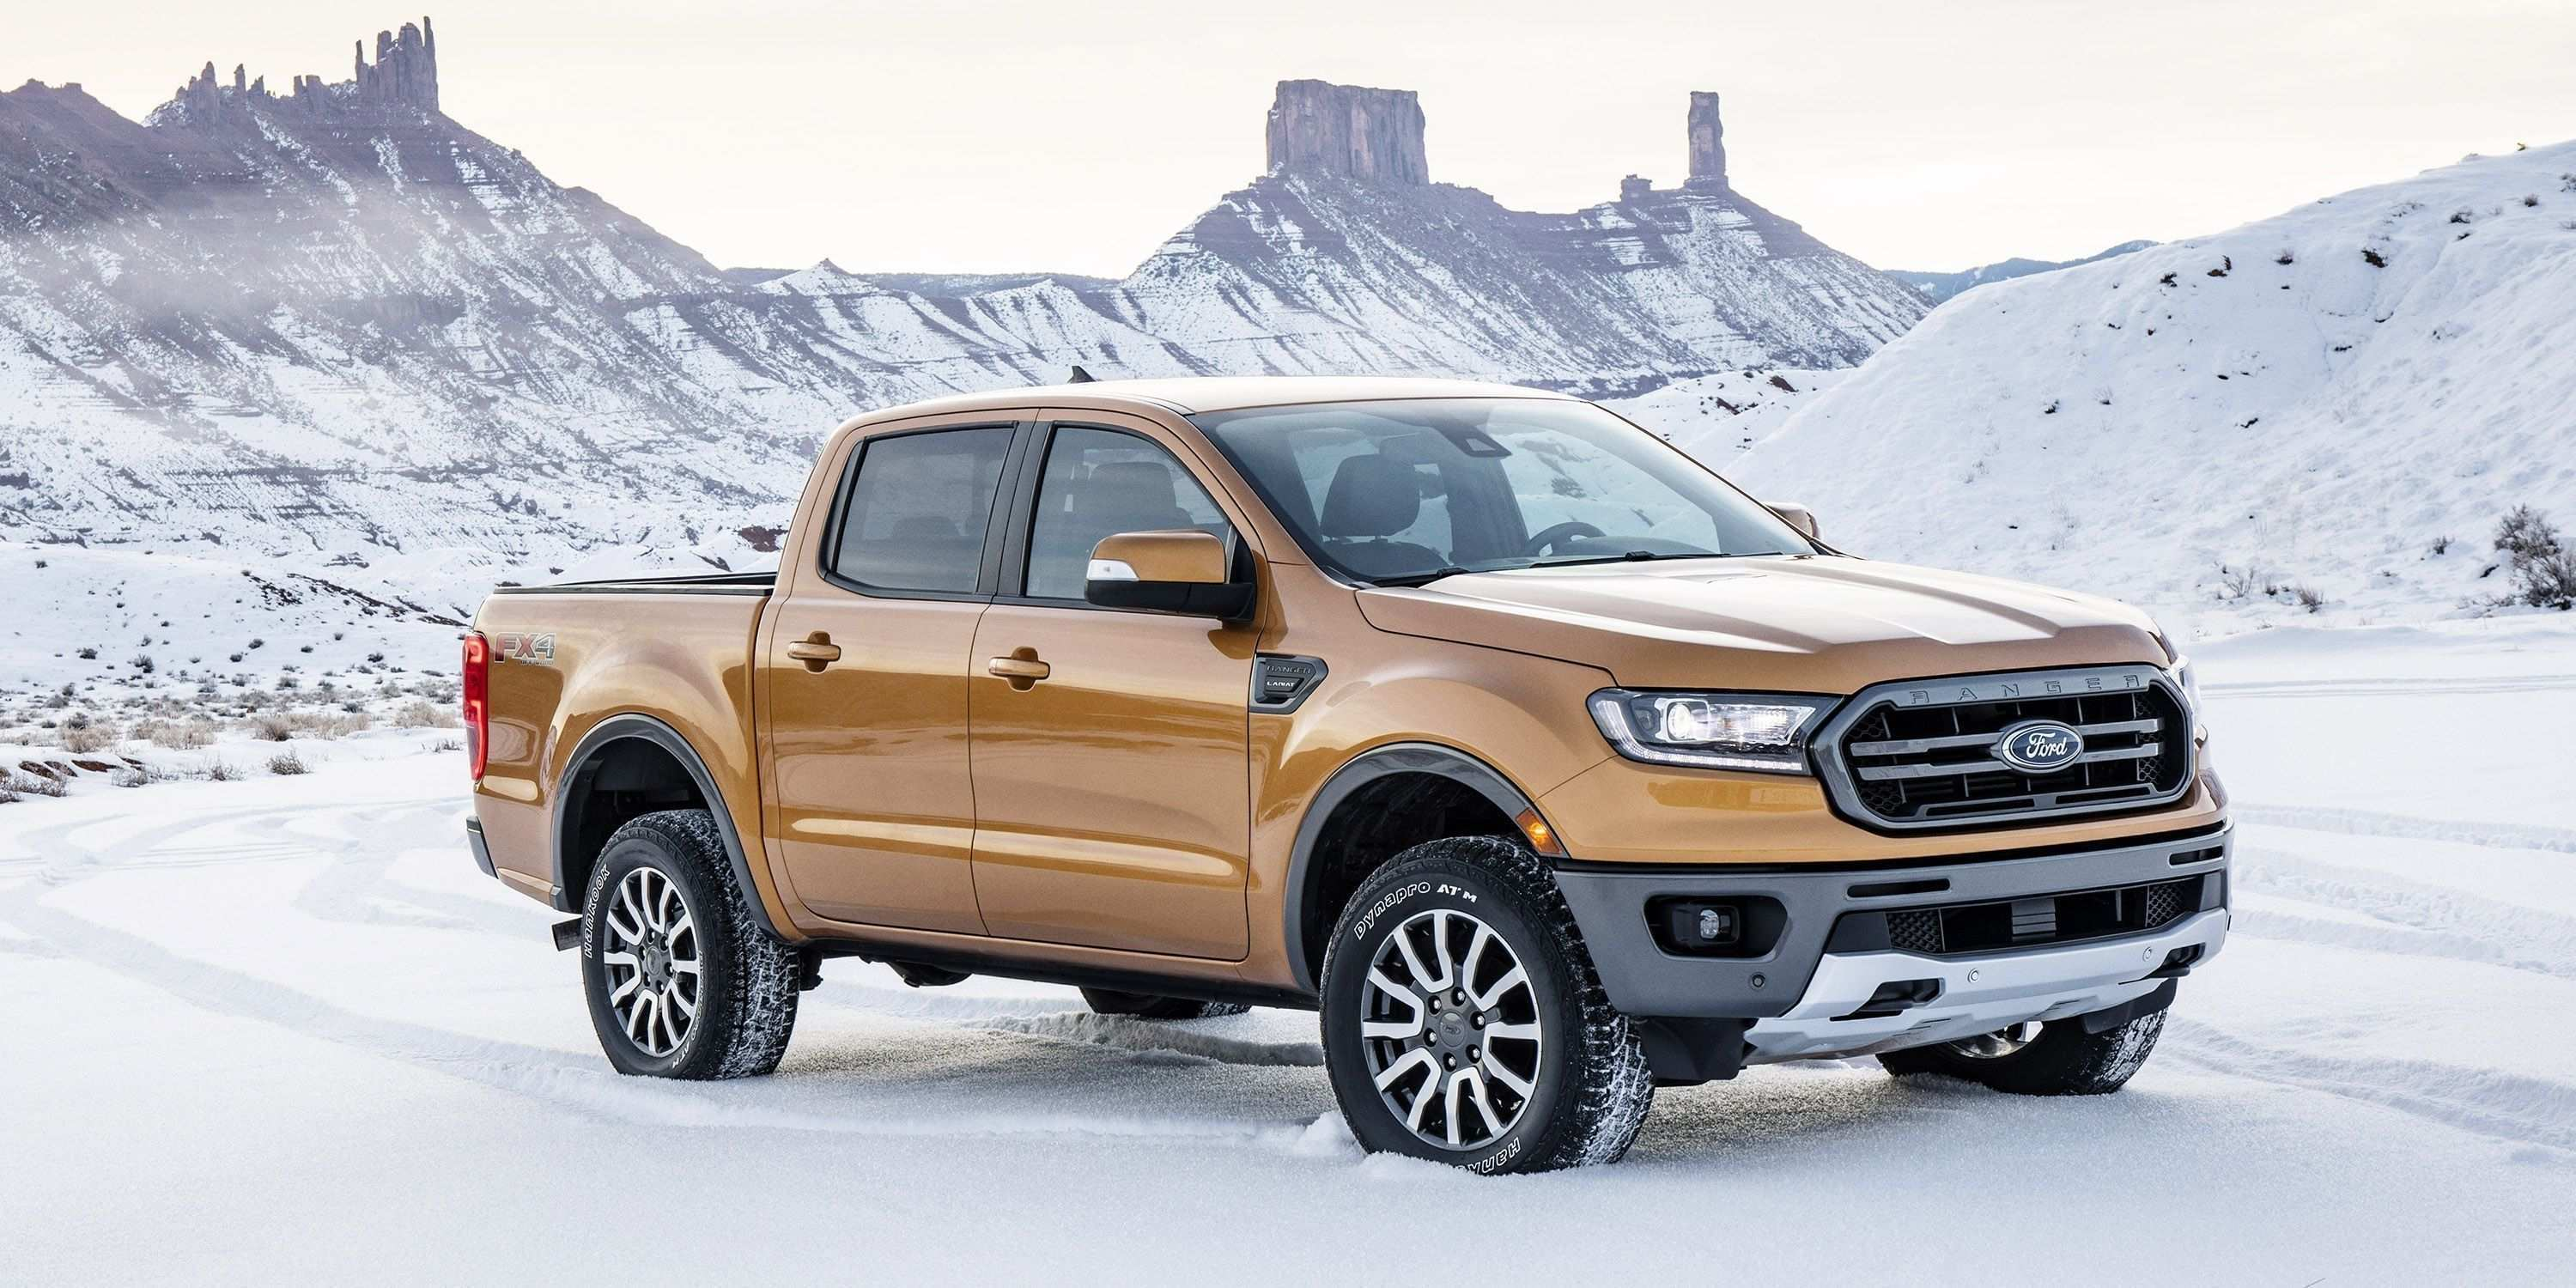 36 The Best 2019 Ford Ranger Vs Bmw Canyon Price And Release Date